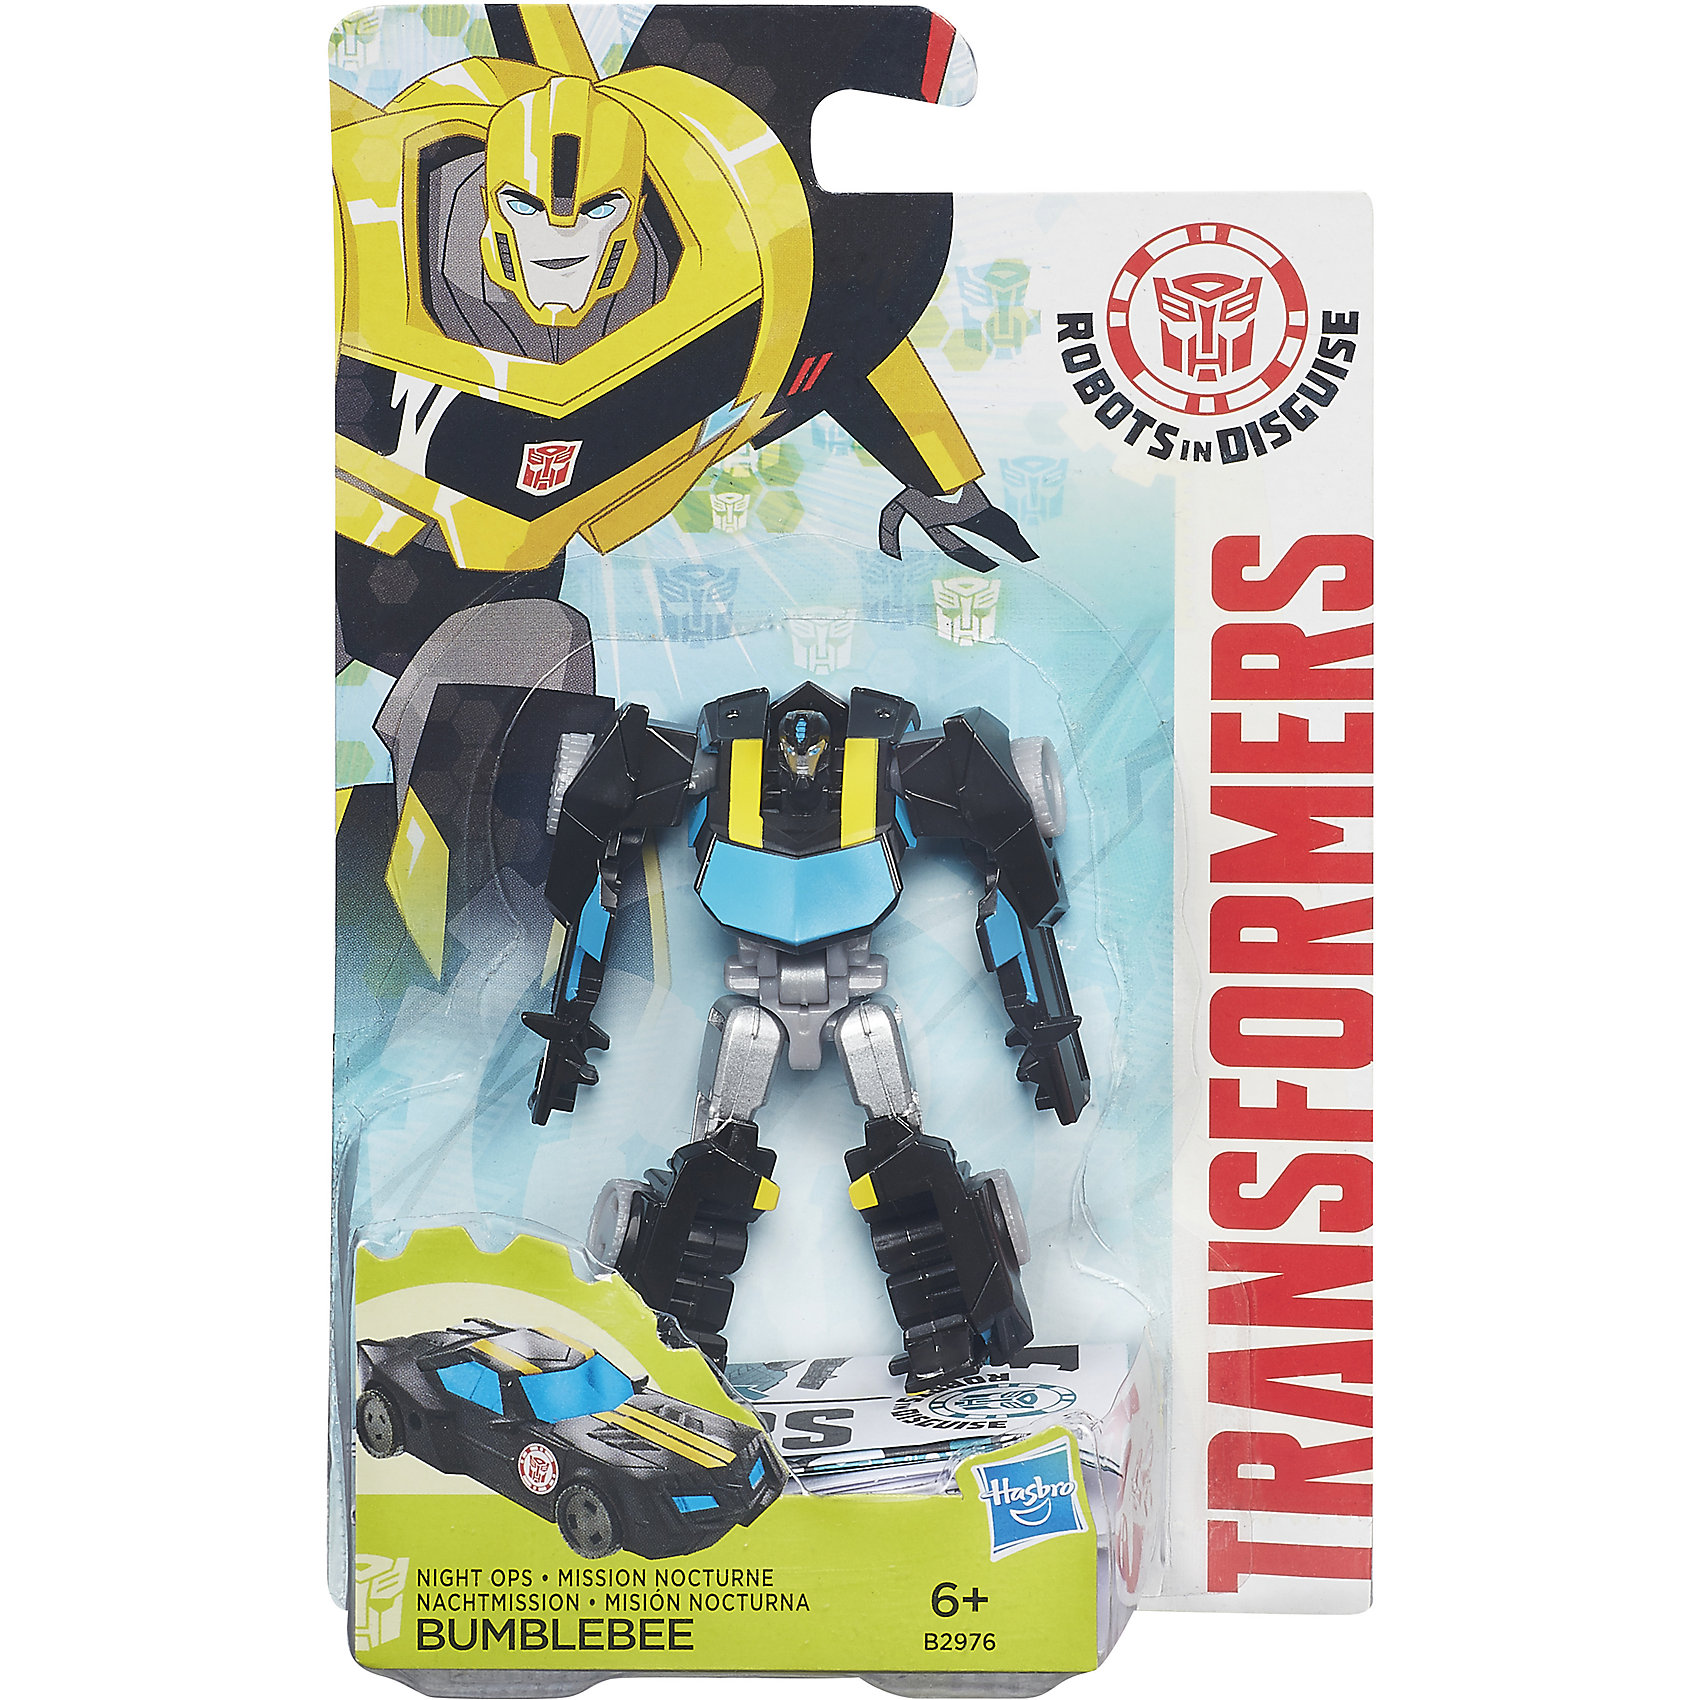 Hasbro Роботс-ин-Дисгайс  Легион, Трансформеры, B0065/B2976 hasbro hasbro трансформеры robots in disguise autobot drift